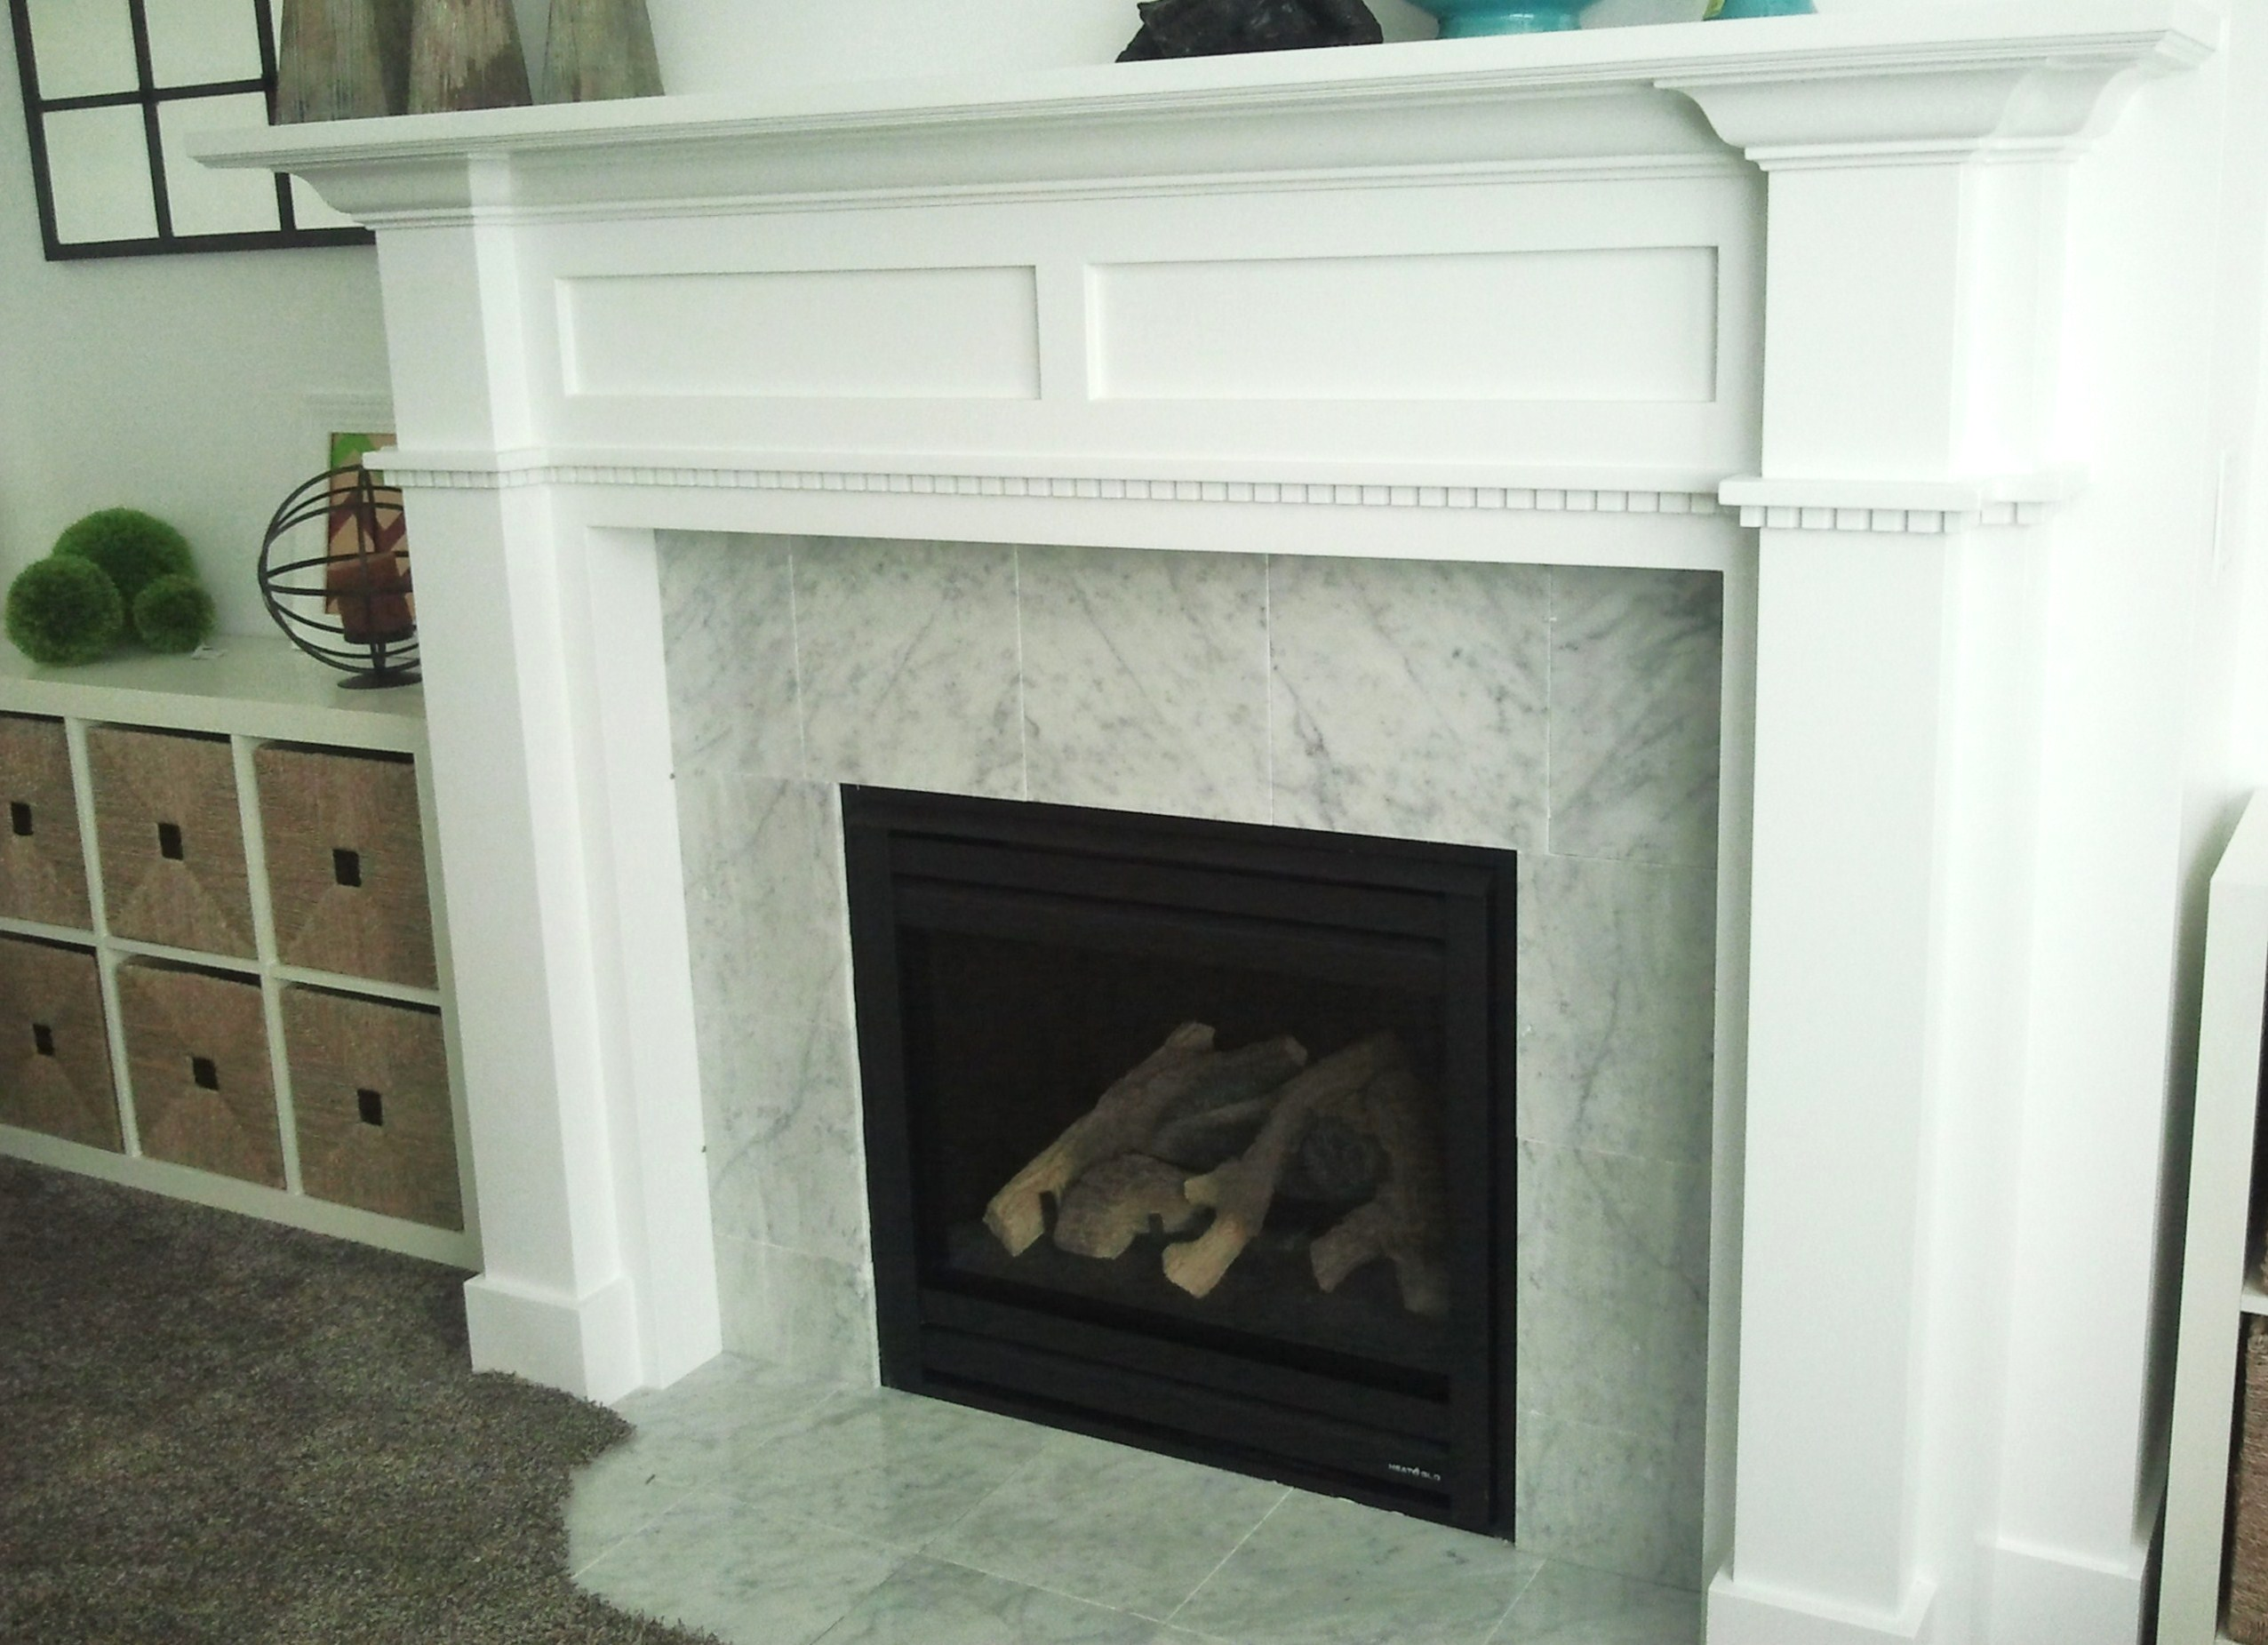 Diy fireplace mantel surround fireplace design ideas diy fireplace mantel surround solutioingenieria Images